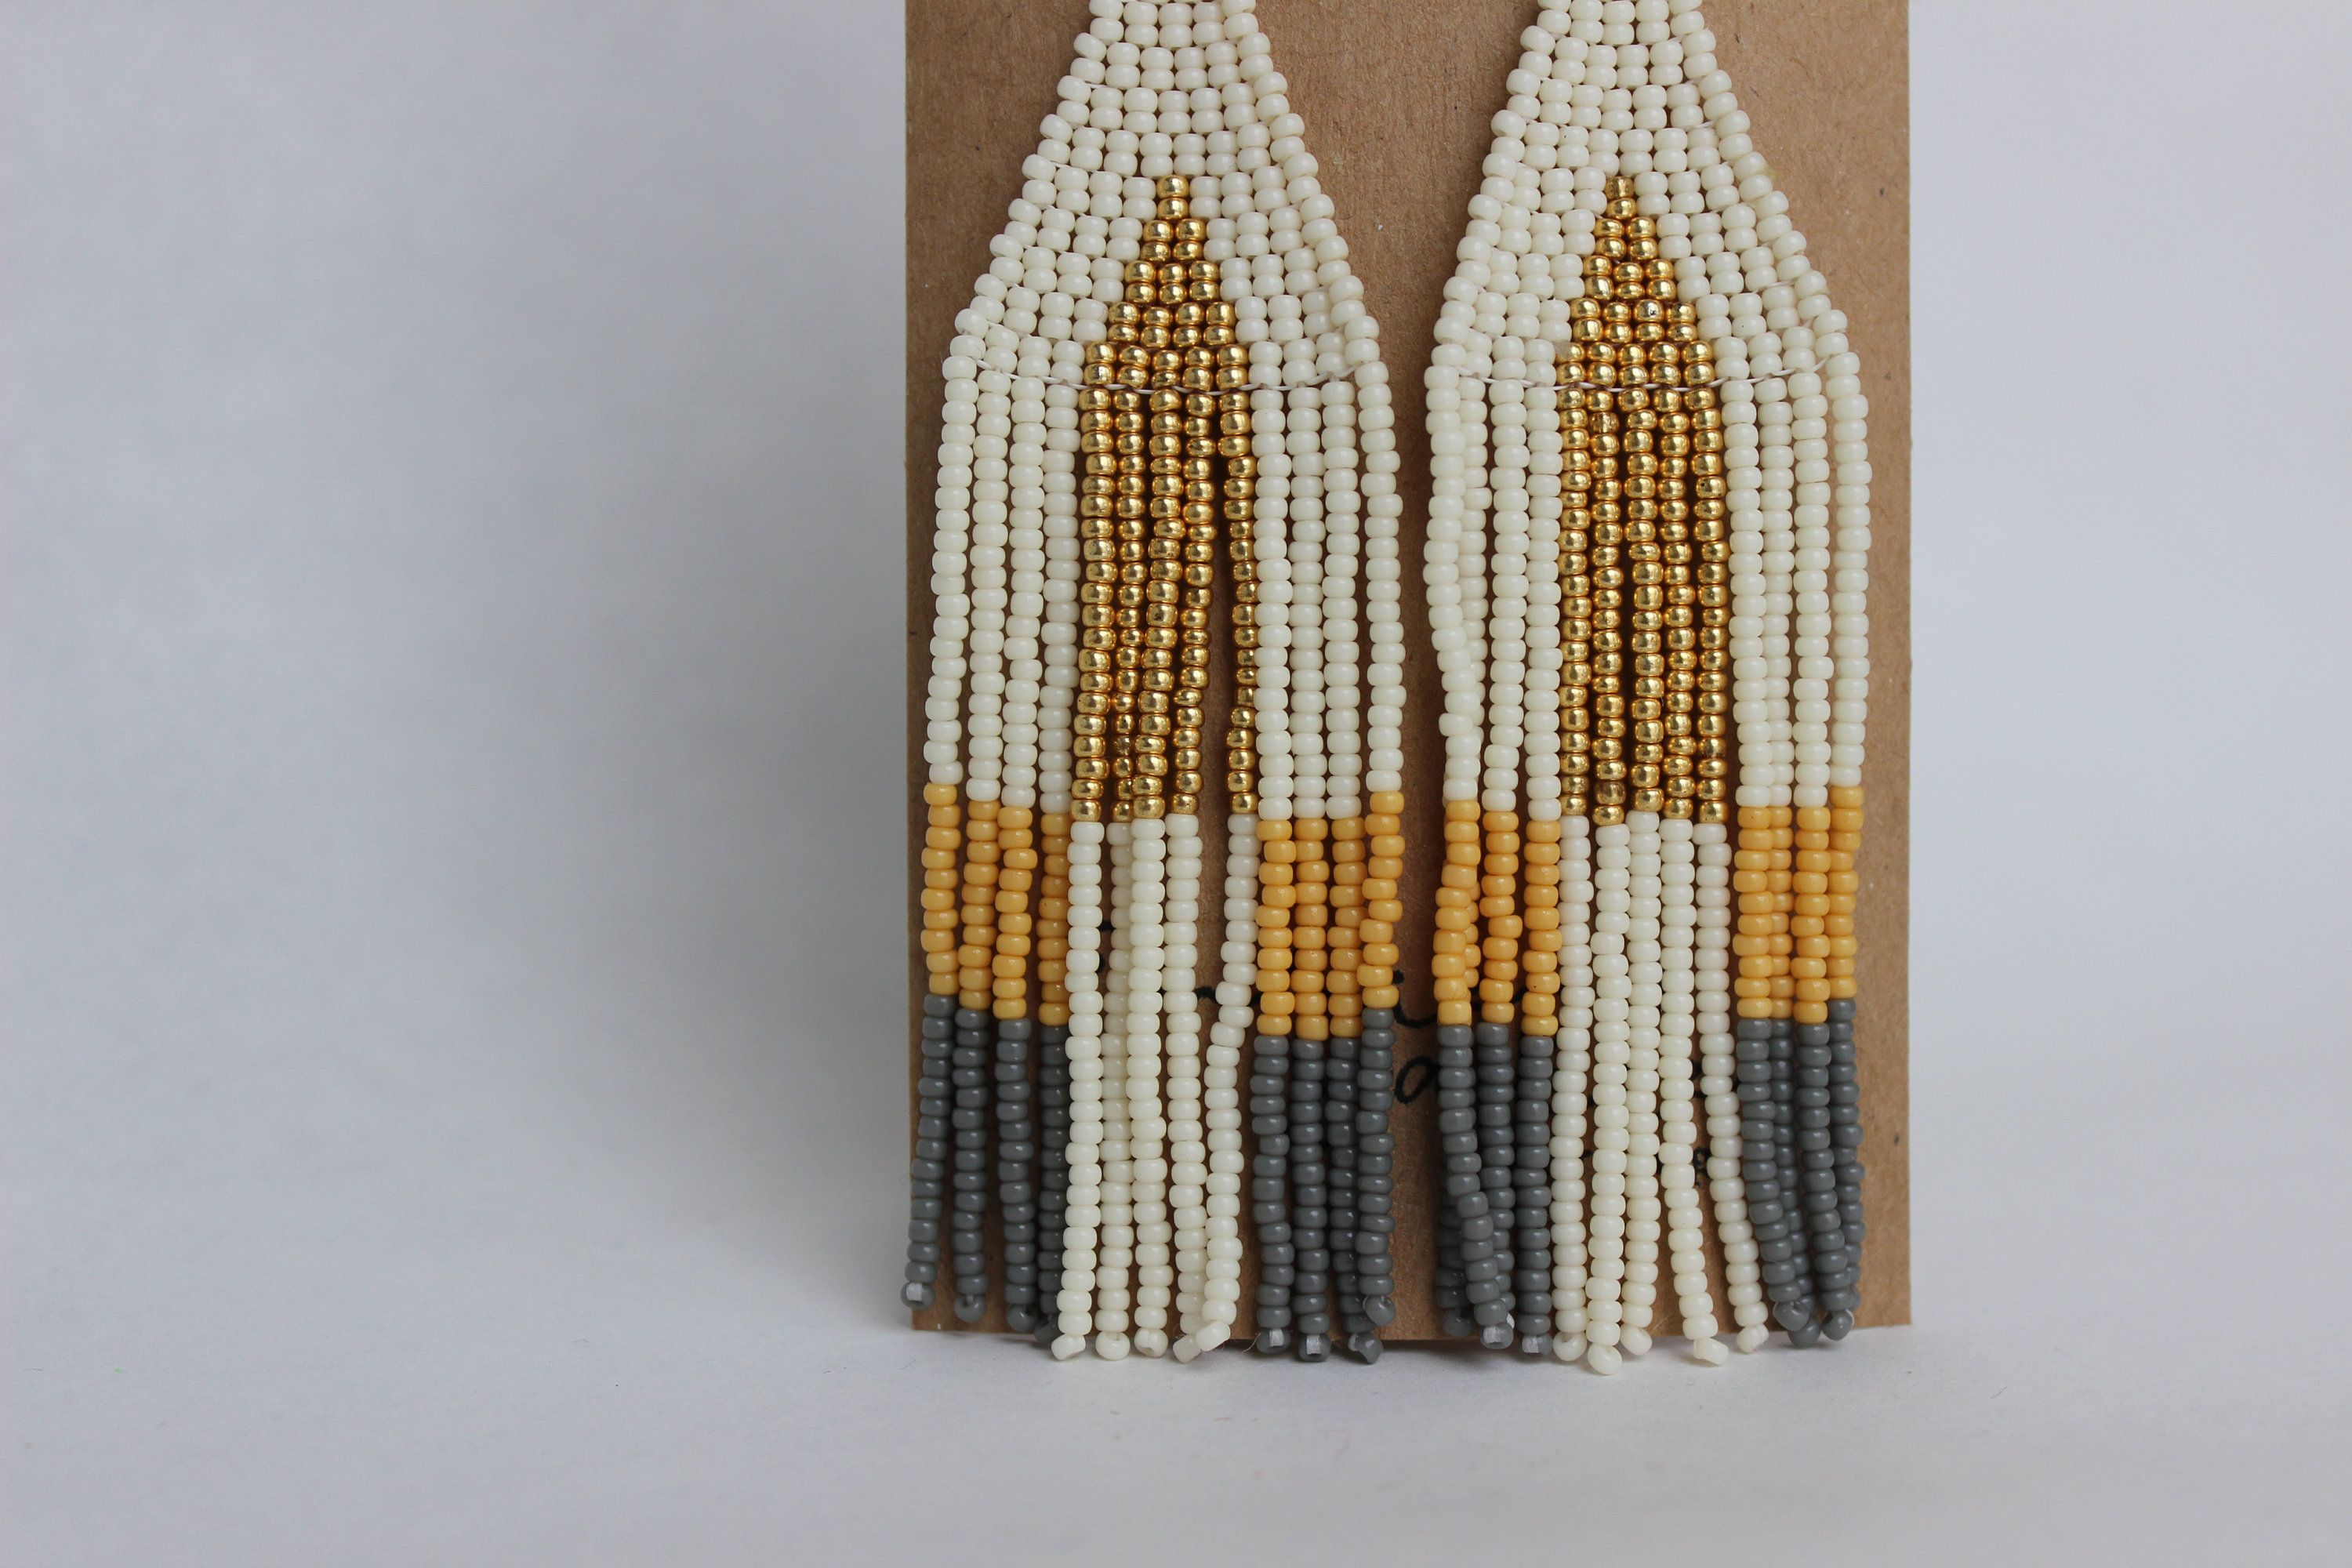 Excited to share this item from my #etsy shop: Long Dangly Earrings, Handwoven Seed Bead Earrings, Simple Colors, Gold Accented Earrings